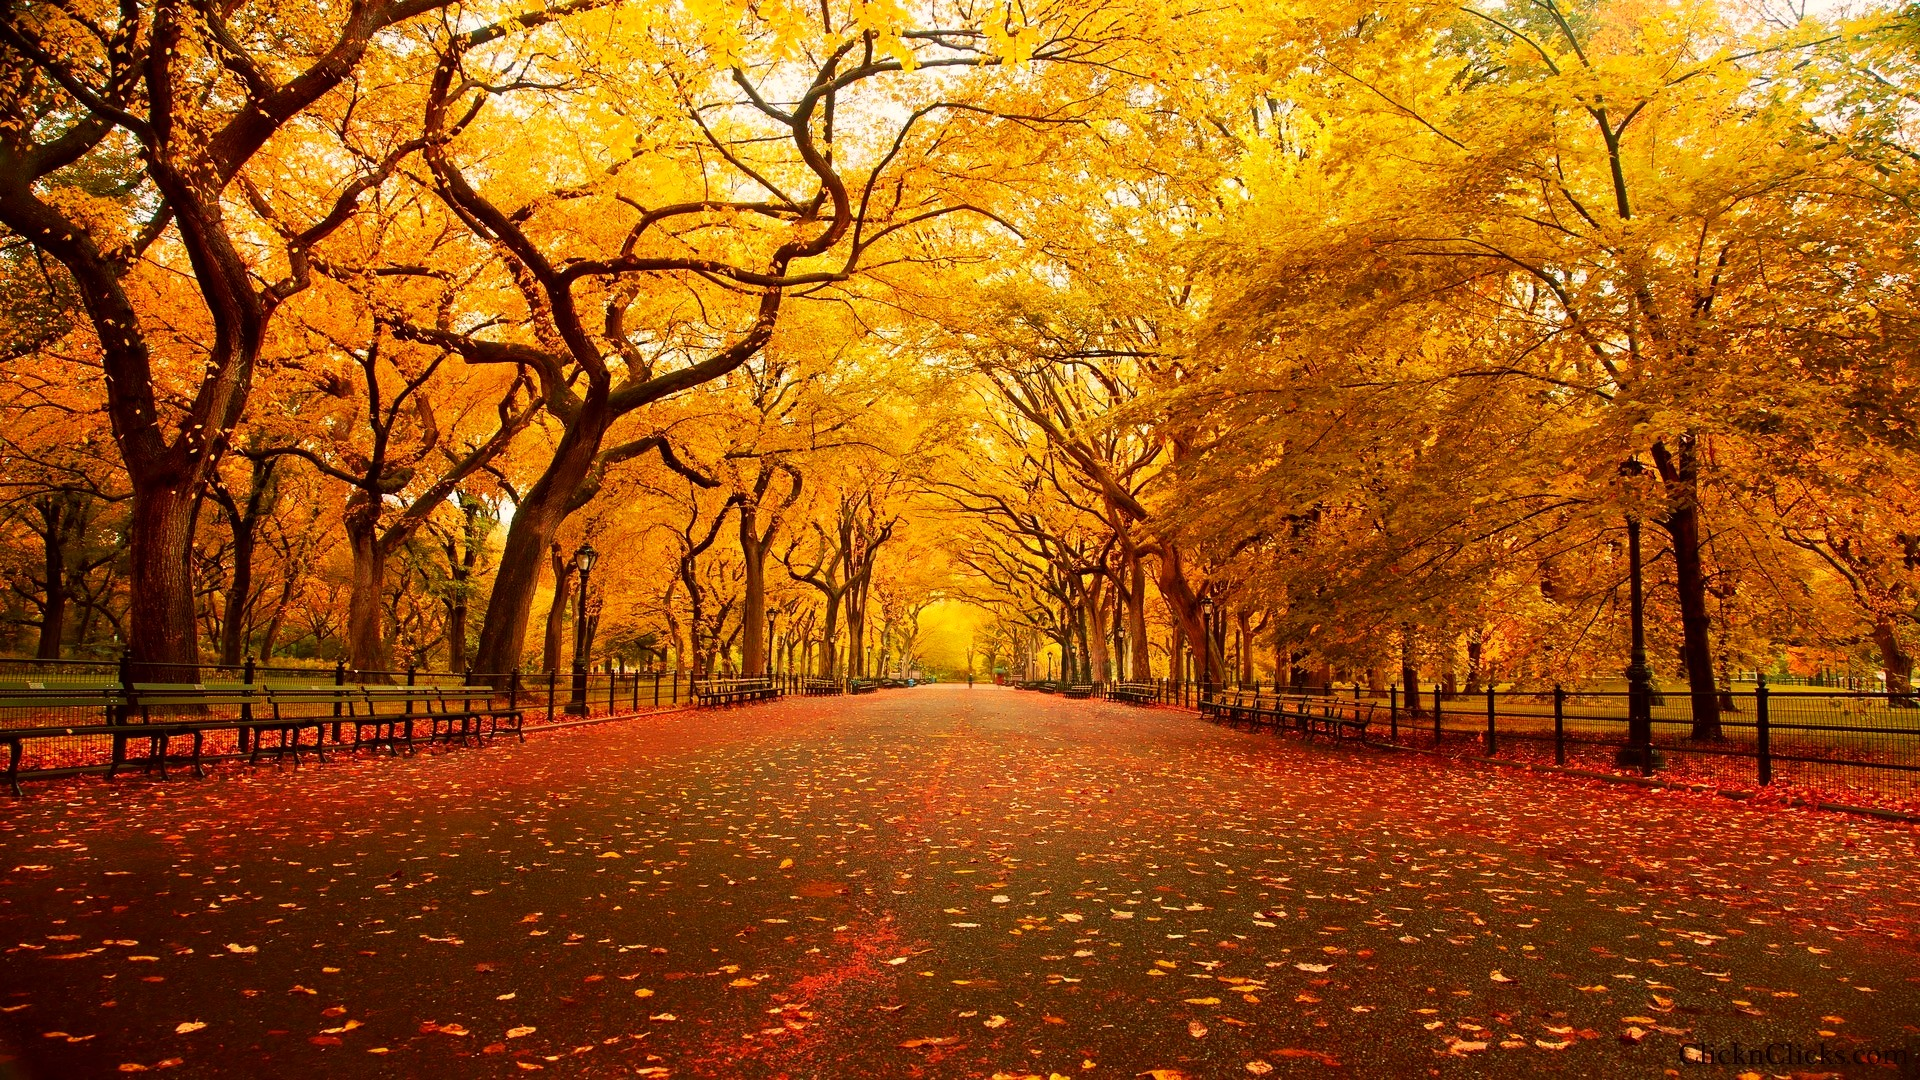 Fall HD Wallpaper #7000267